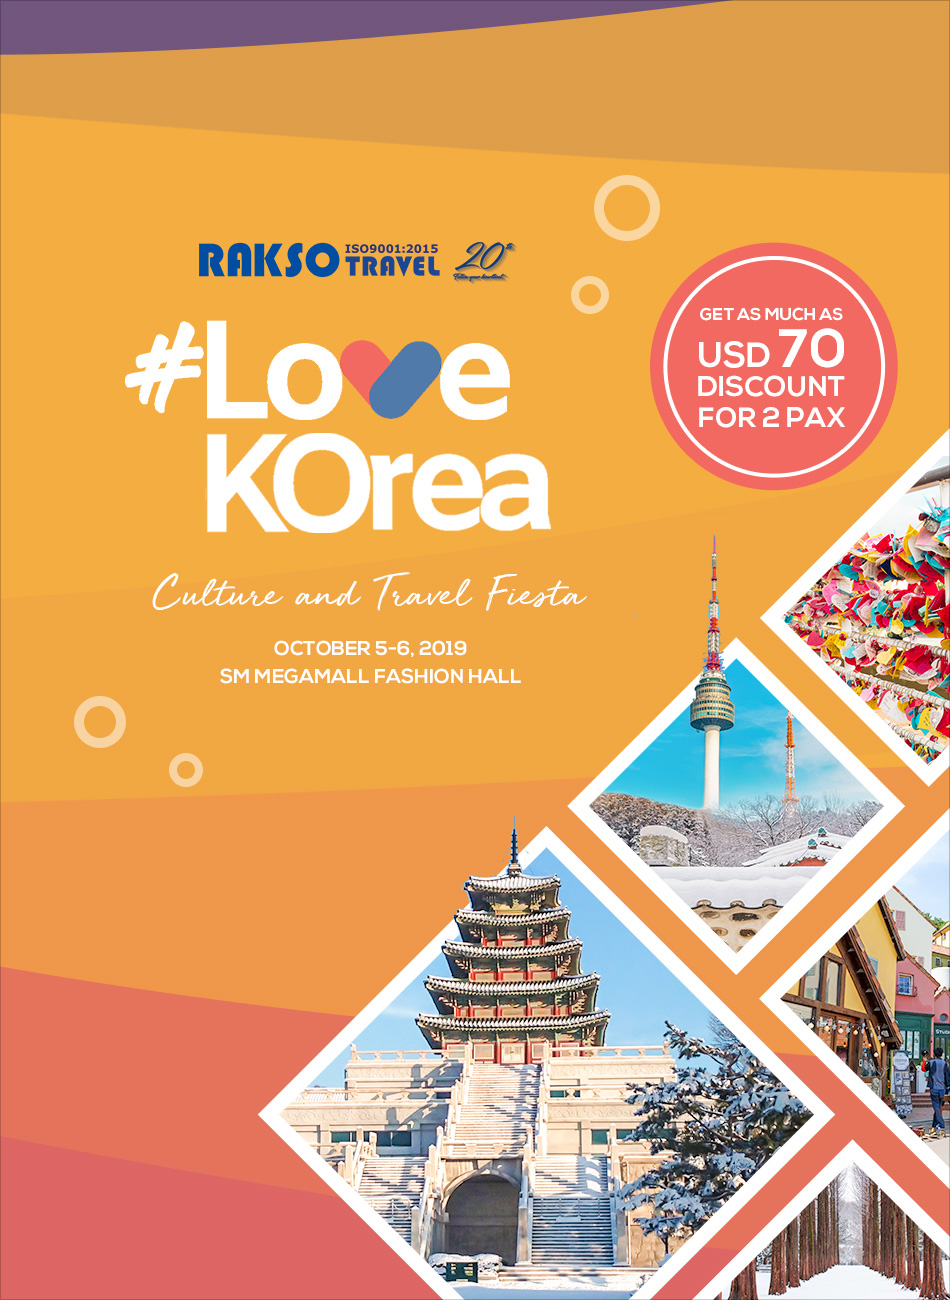 #LOVEKOREA CULTURE AND TRAVEL FIESTA